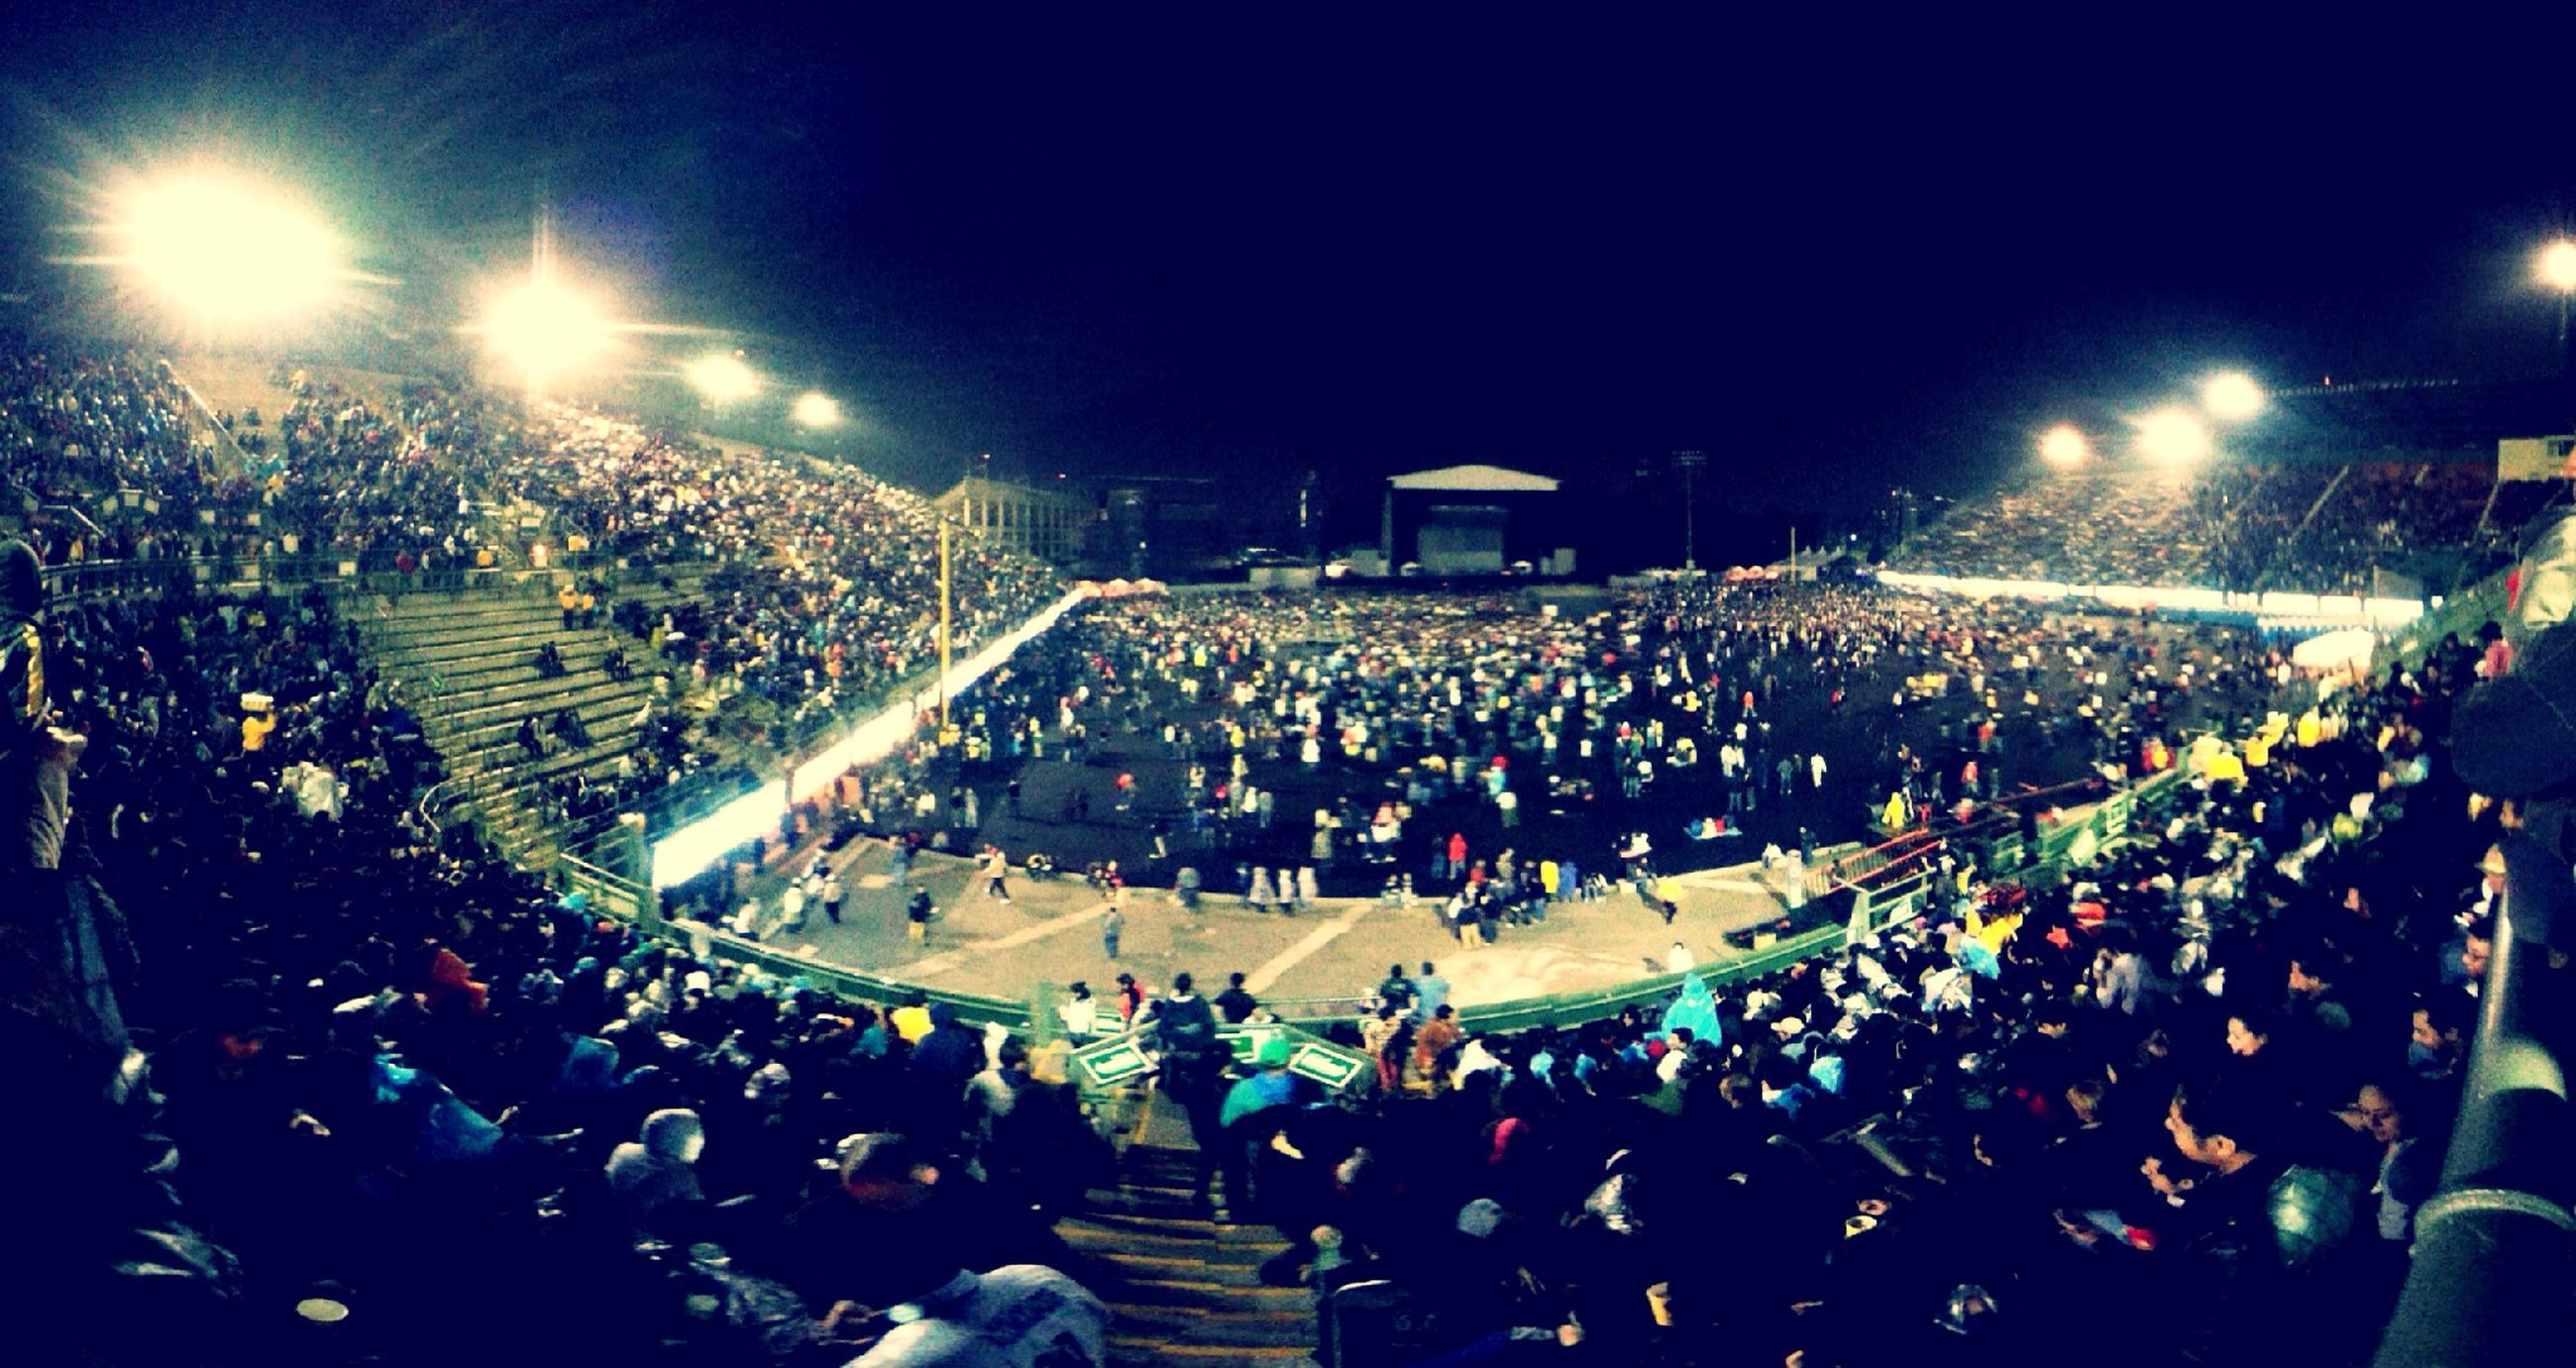 large group of people, crowd, illuminated, lifestyles, night, leisure activity, enjoyment, men, person, arts culture and entertainment, fun, celebration, event, togetherness, music, music festival, spectator, performance